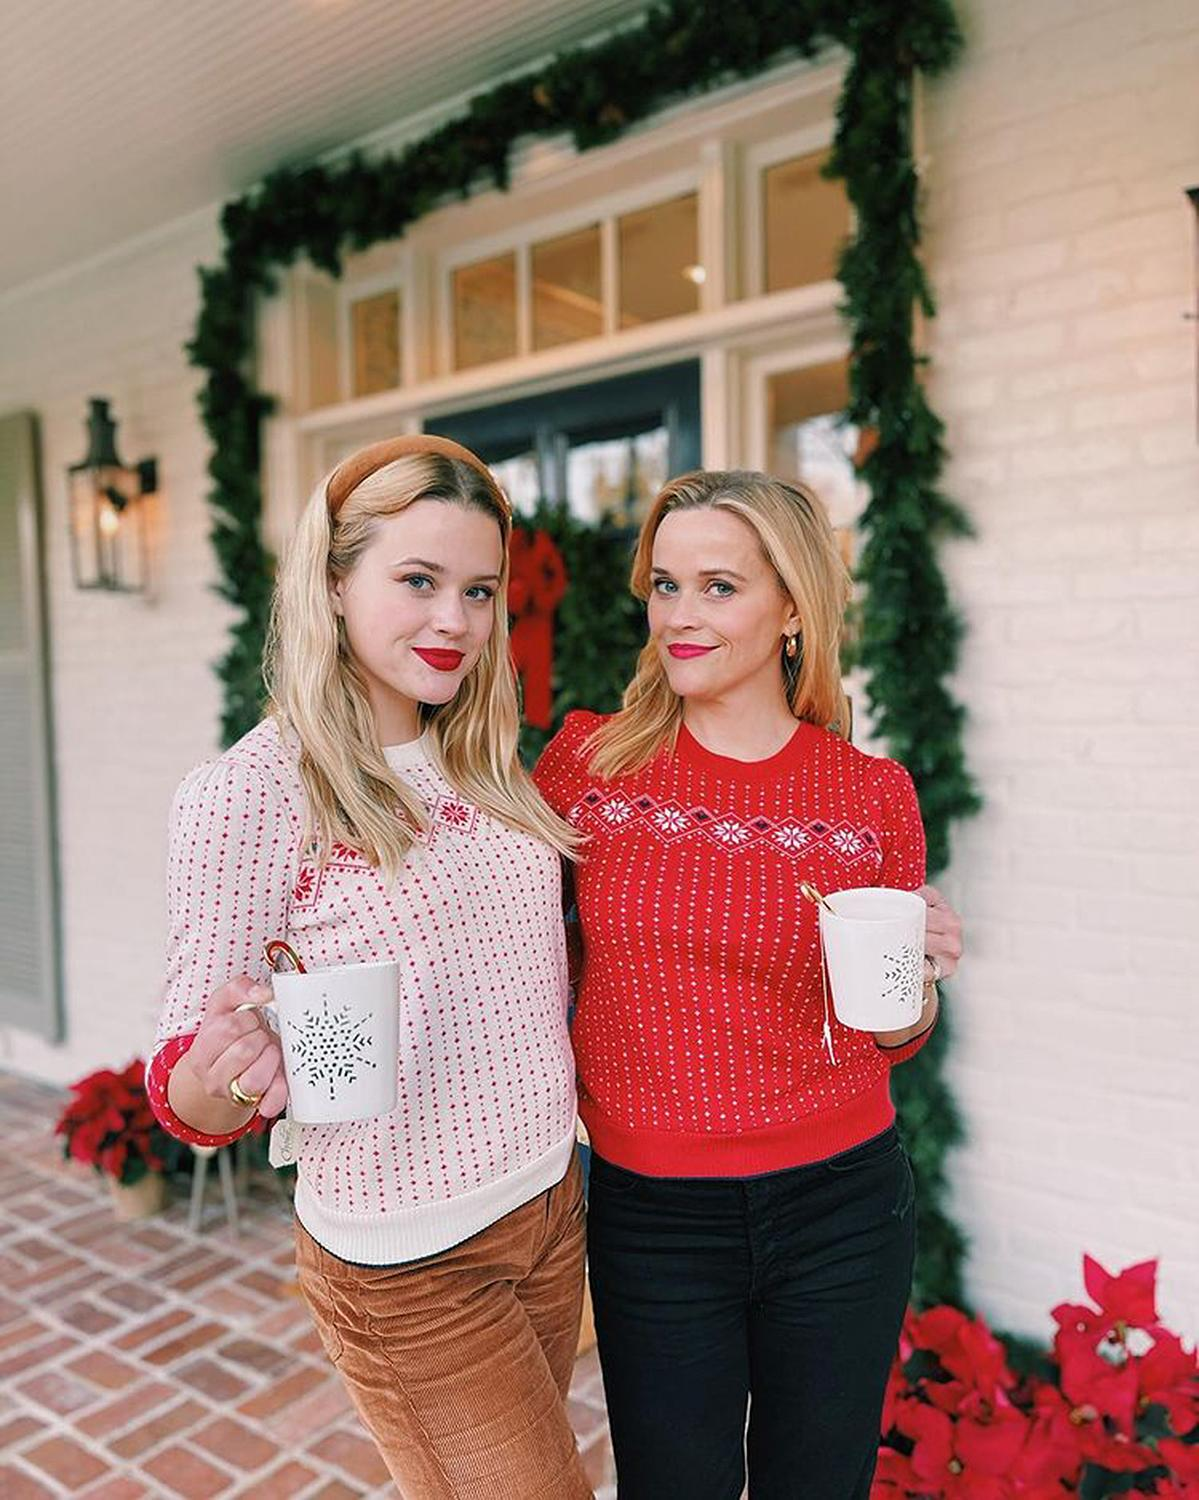 Reese Witherspoon and Her Daughter Truly Look Like Twins